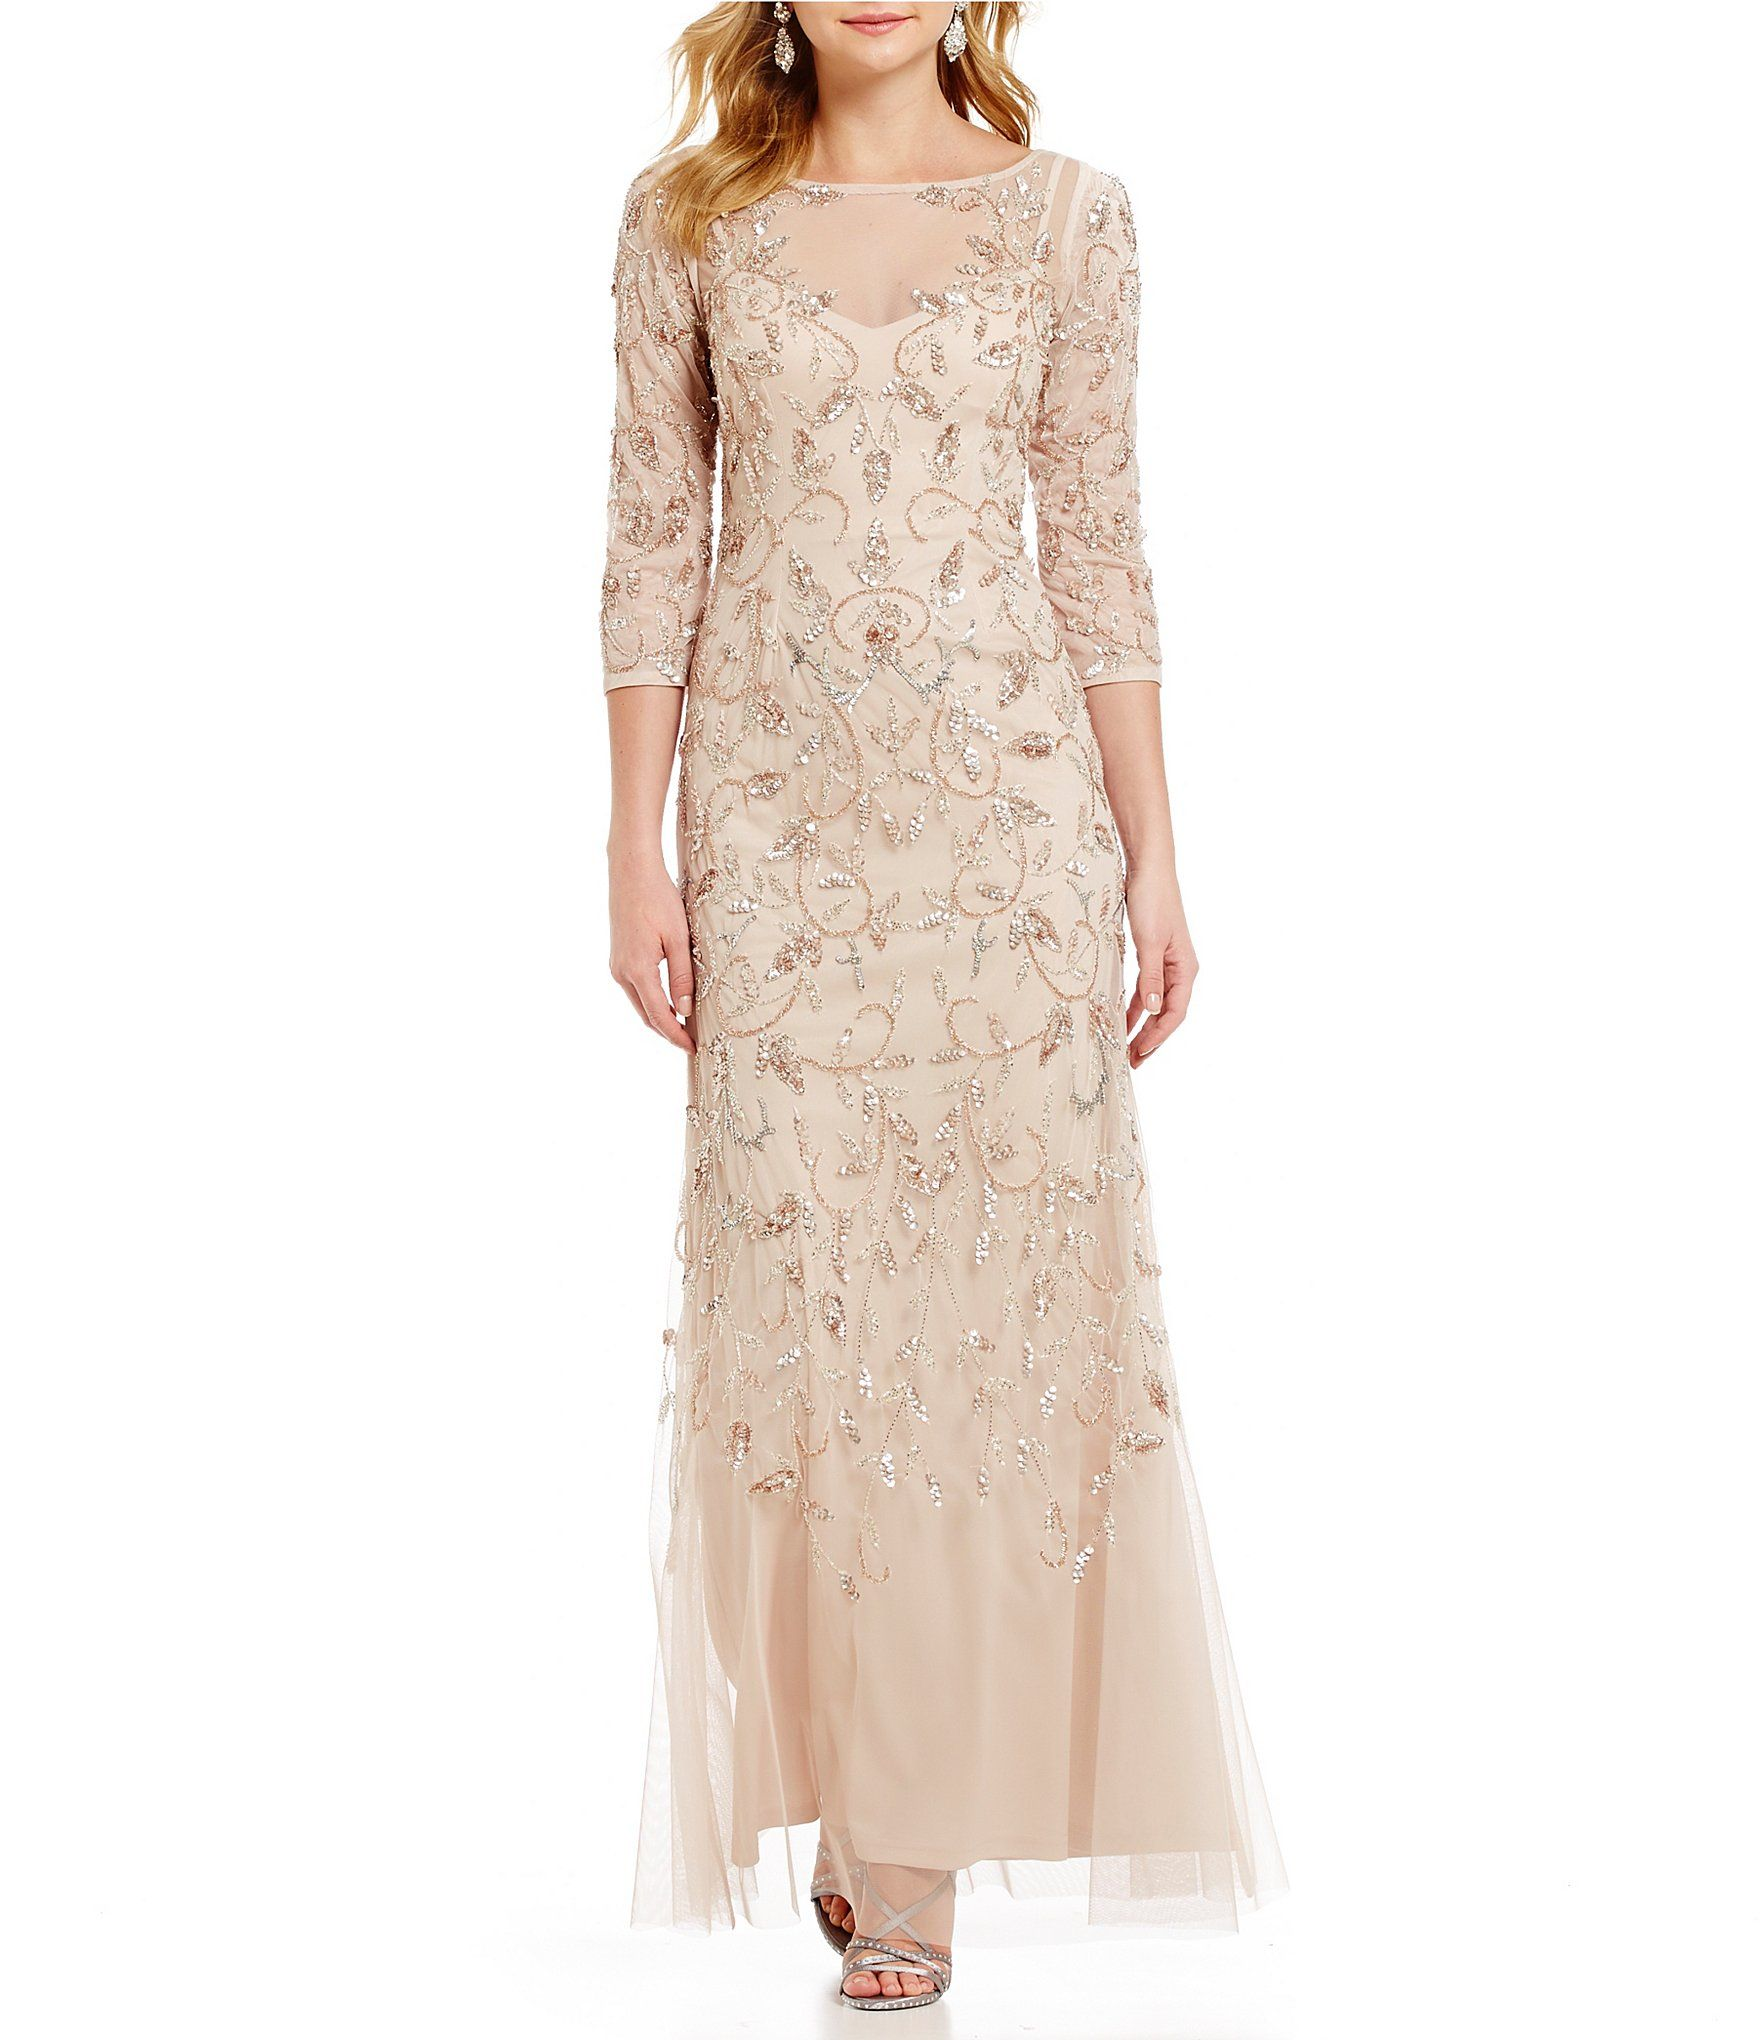 0e9c364b572 Shop for Adrianna Papell 3 4 Sleeve Beaded Floral Scroll Gown at Dillards.com.  Visit Dillards.com to find clothing